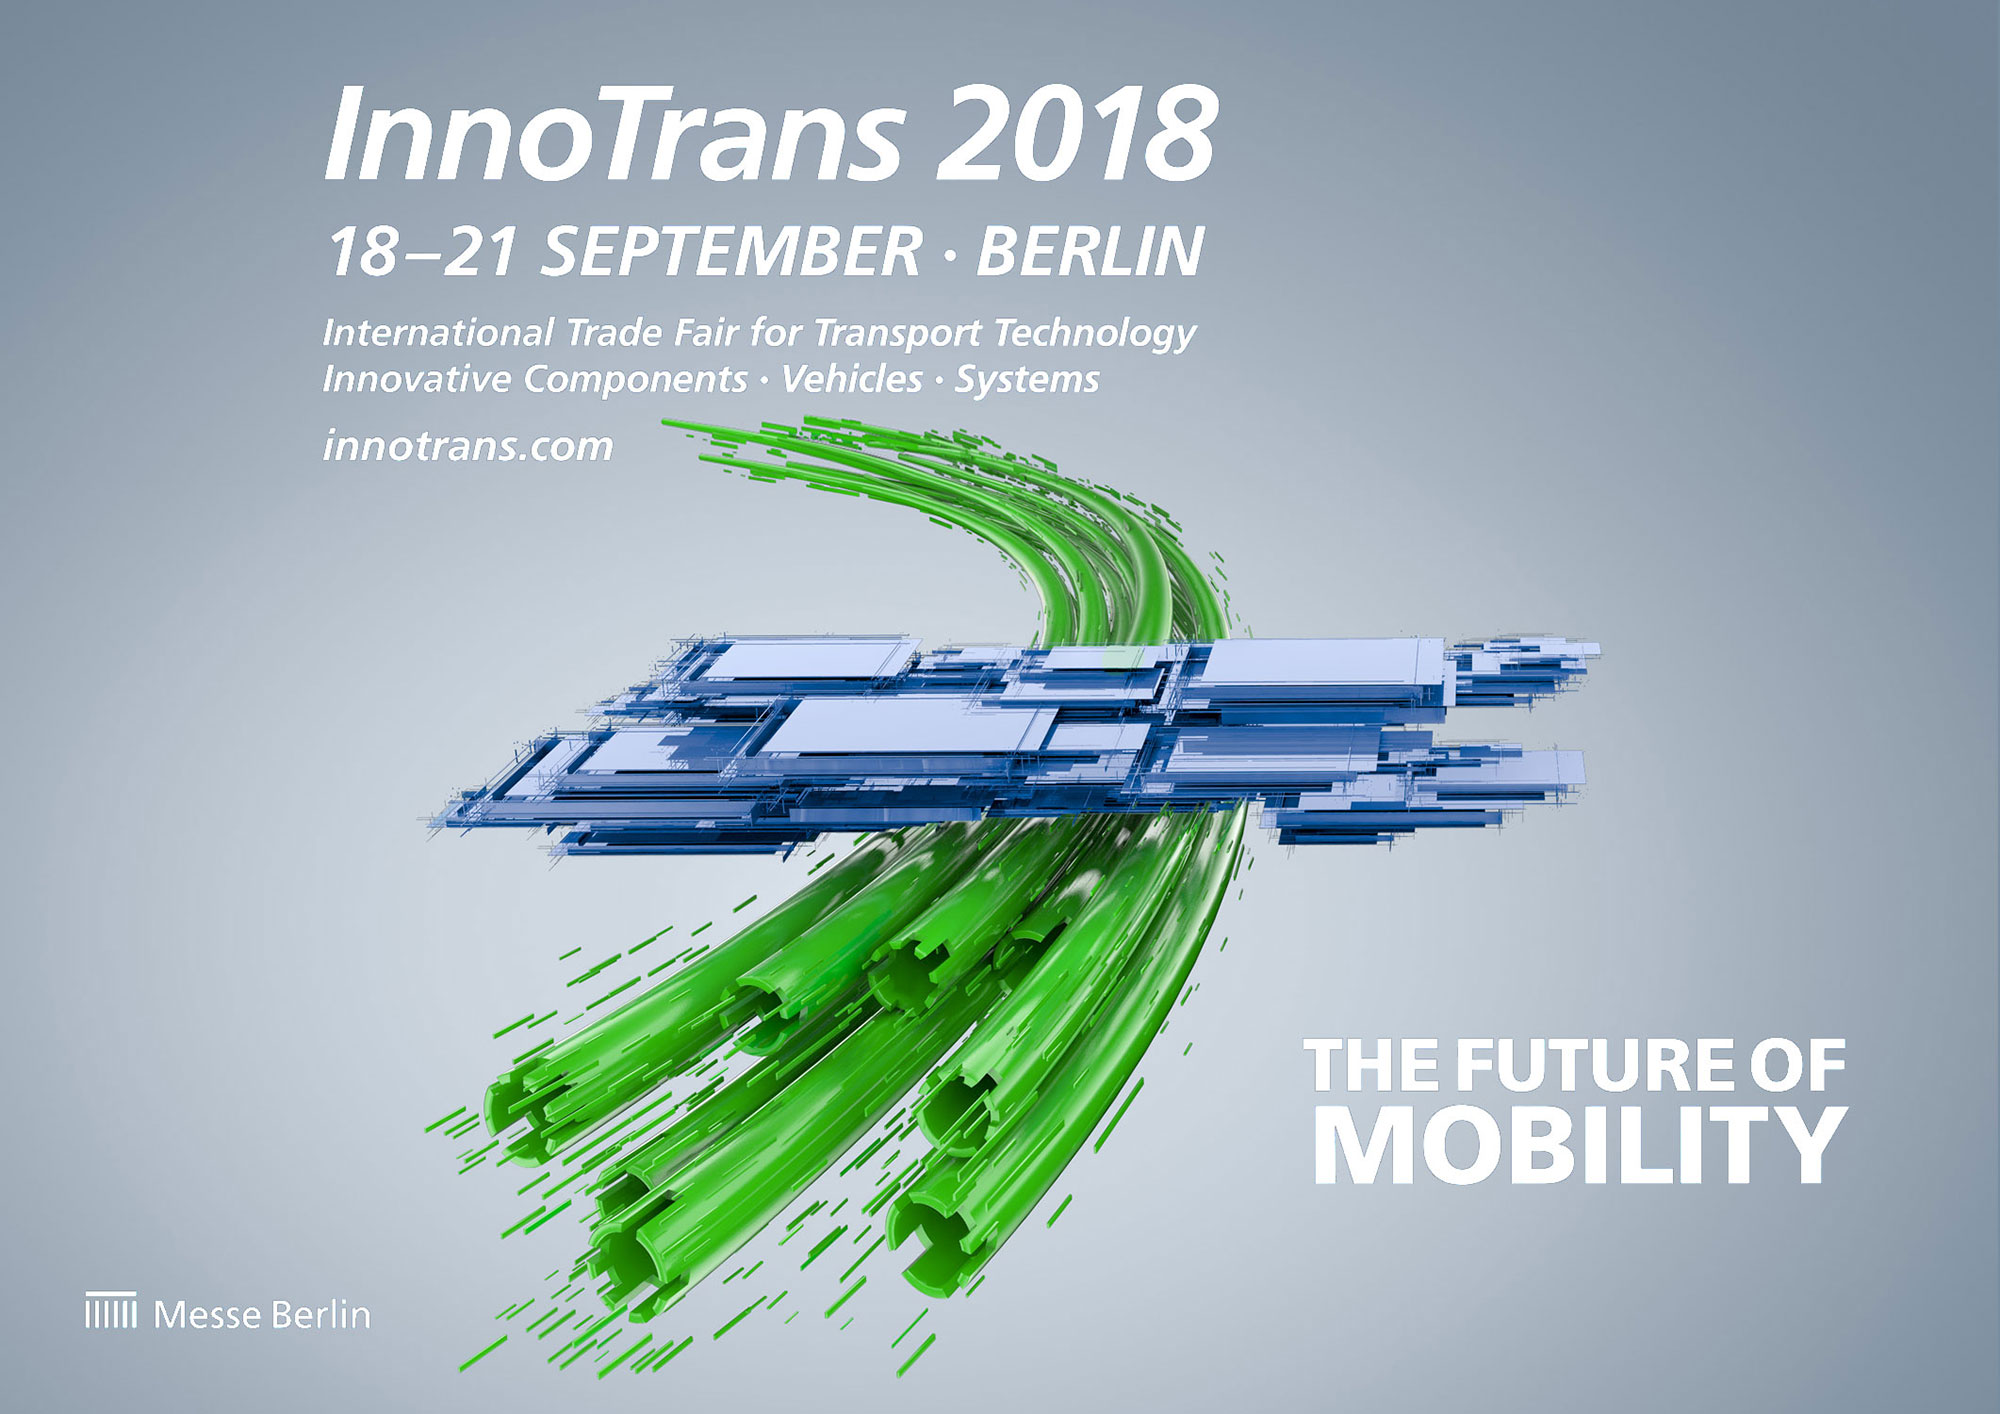 Advertising CGI Rendering 3d Innotrans Logo Messe Schienen Transformation Future Mobility Idris Kolodziej